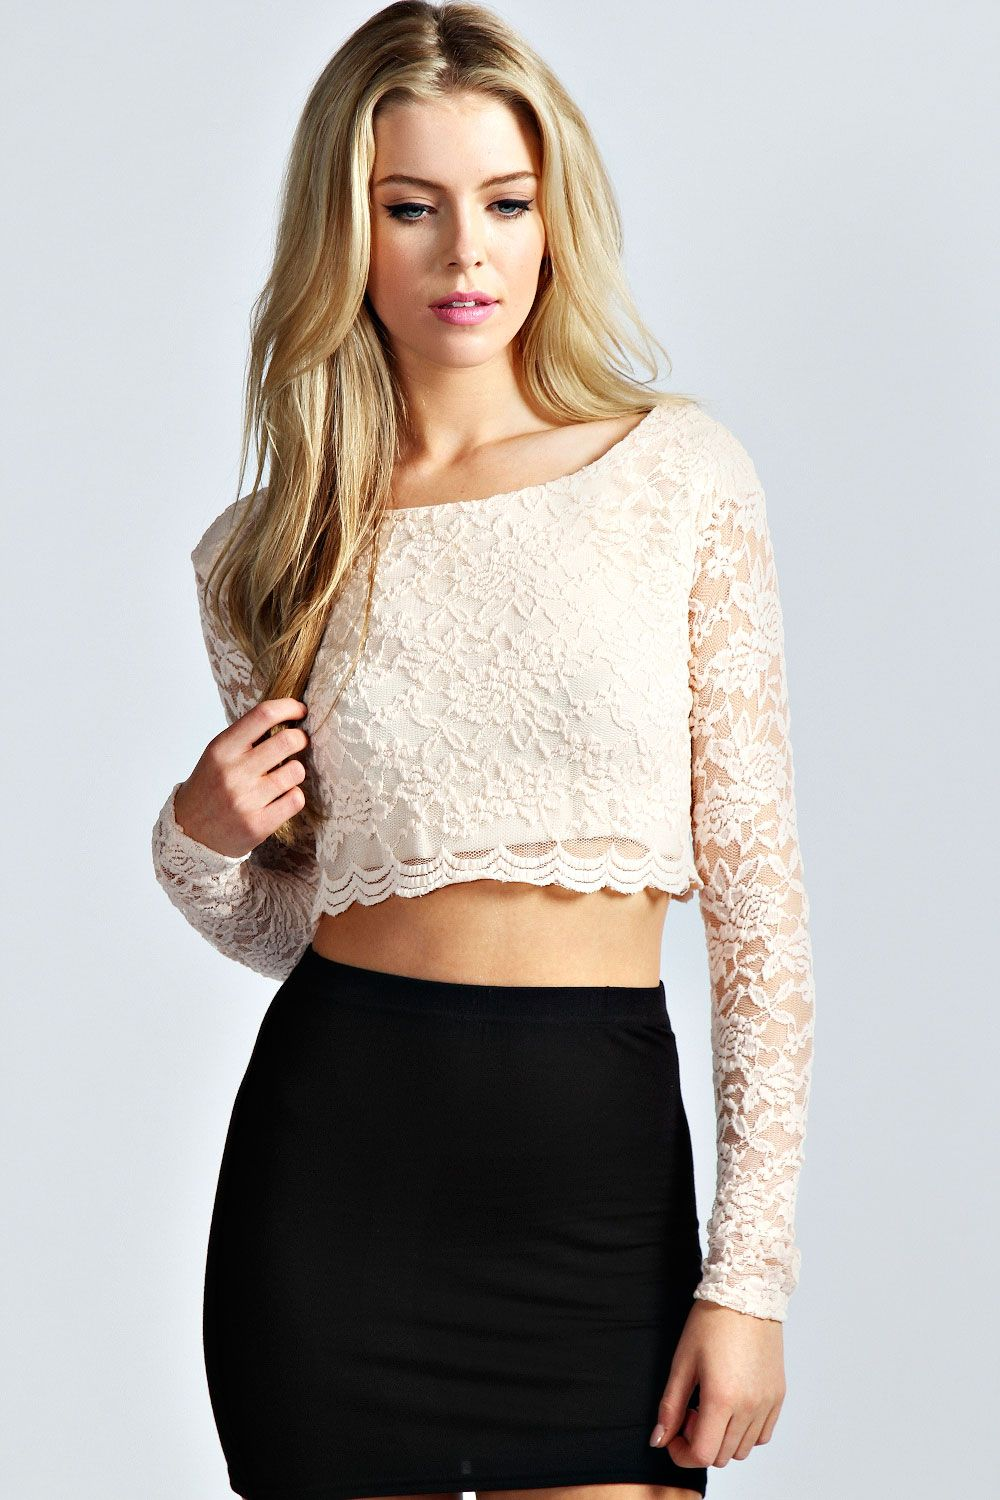 c5822e624af0fd Lace top and black skinnies with a leopard clutch. Description from  pinterest.com. I searched for this on bing.com images